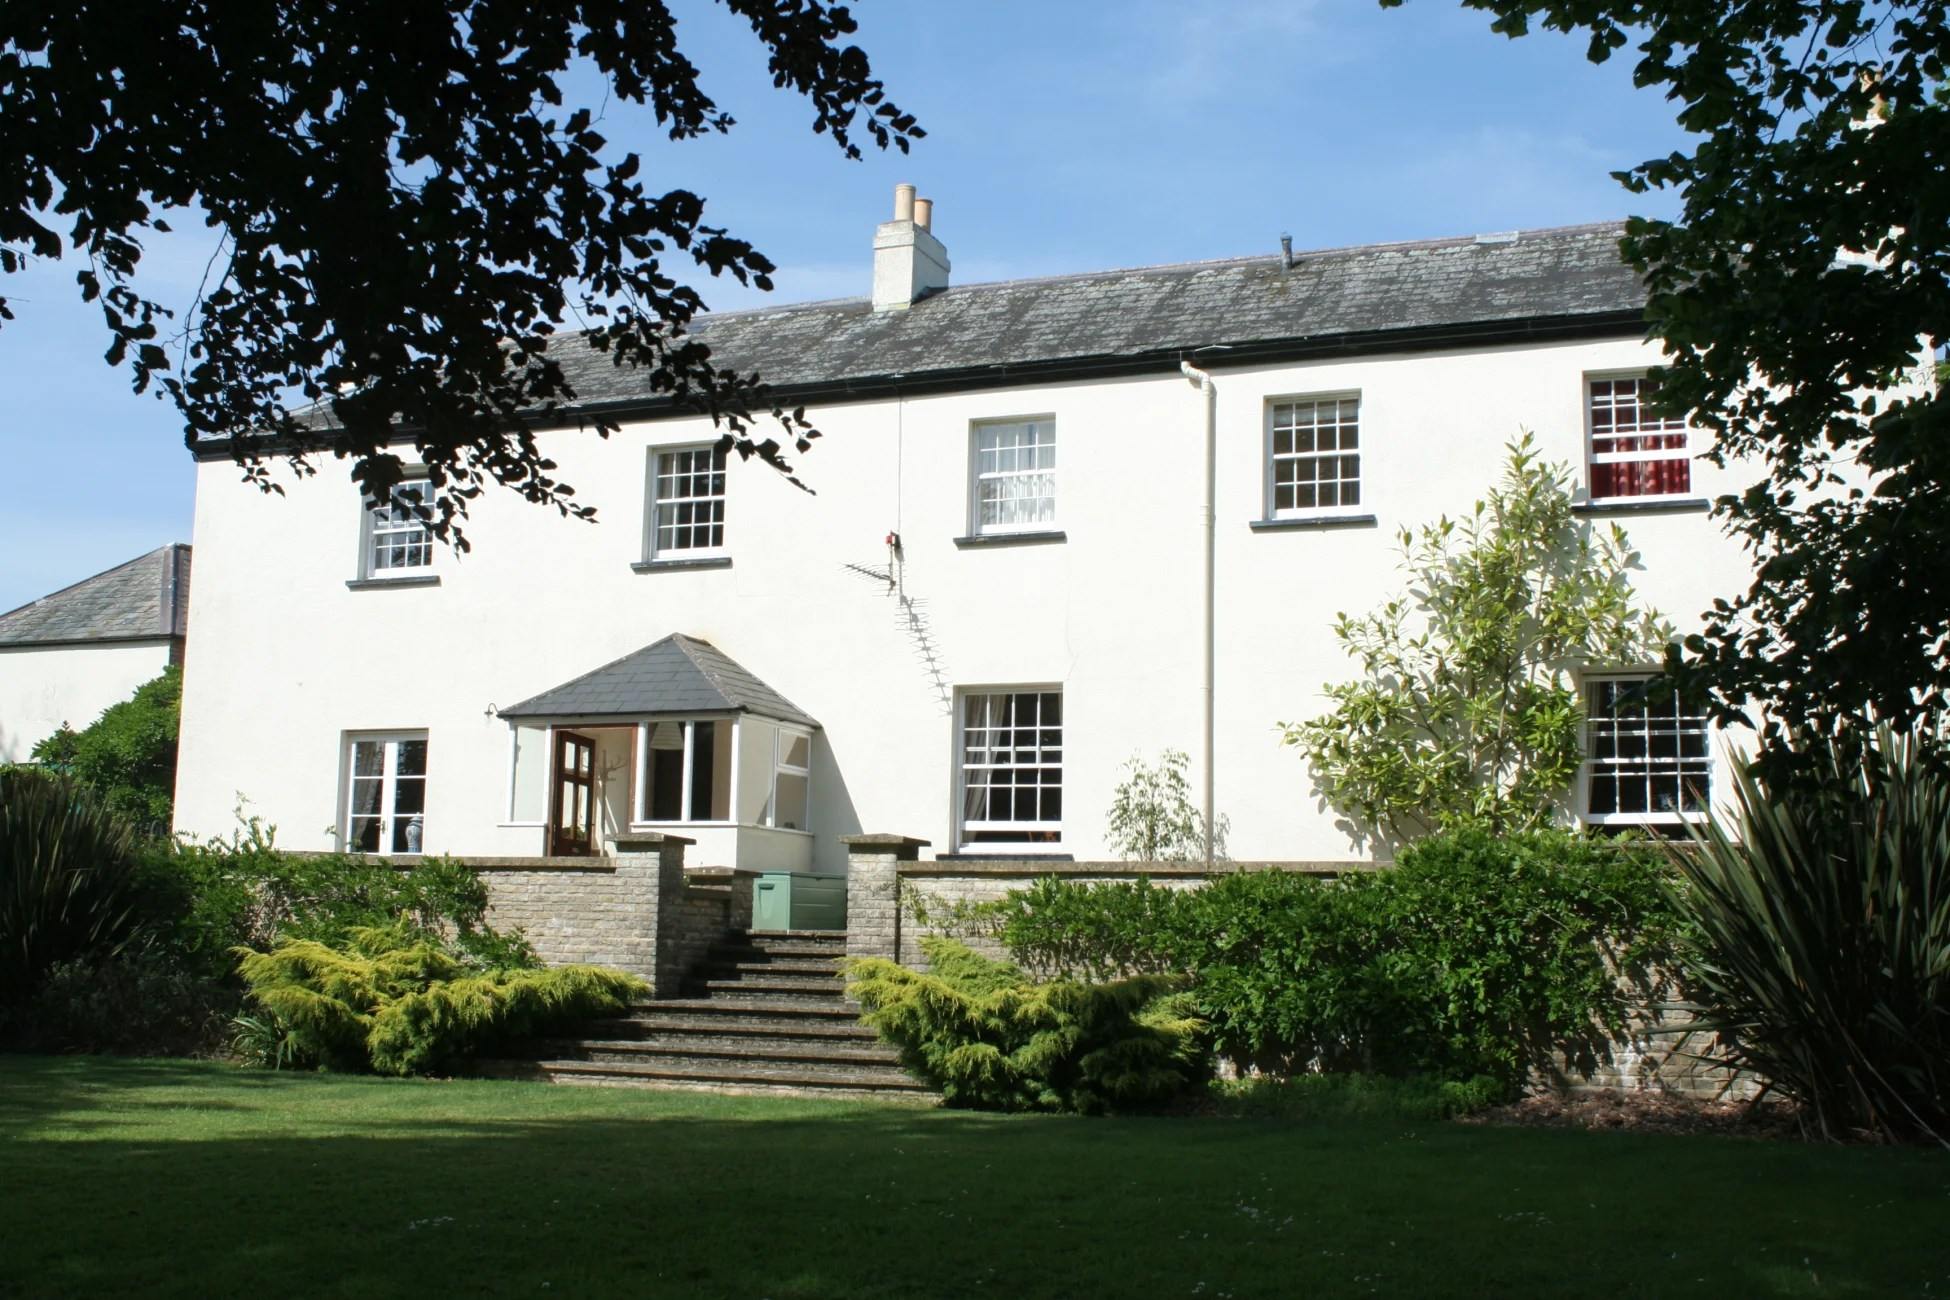 Bed And Breakfast Budleigh Salterton Bed Breakfast Buckley Farmhouse Sidmouth Trivago Co Uk